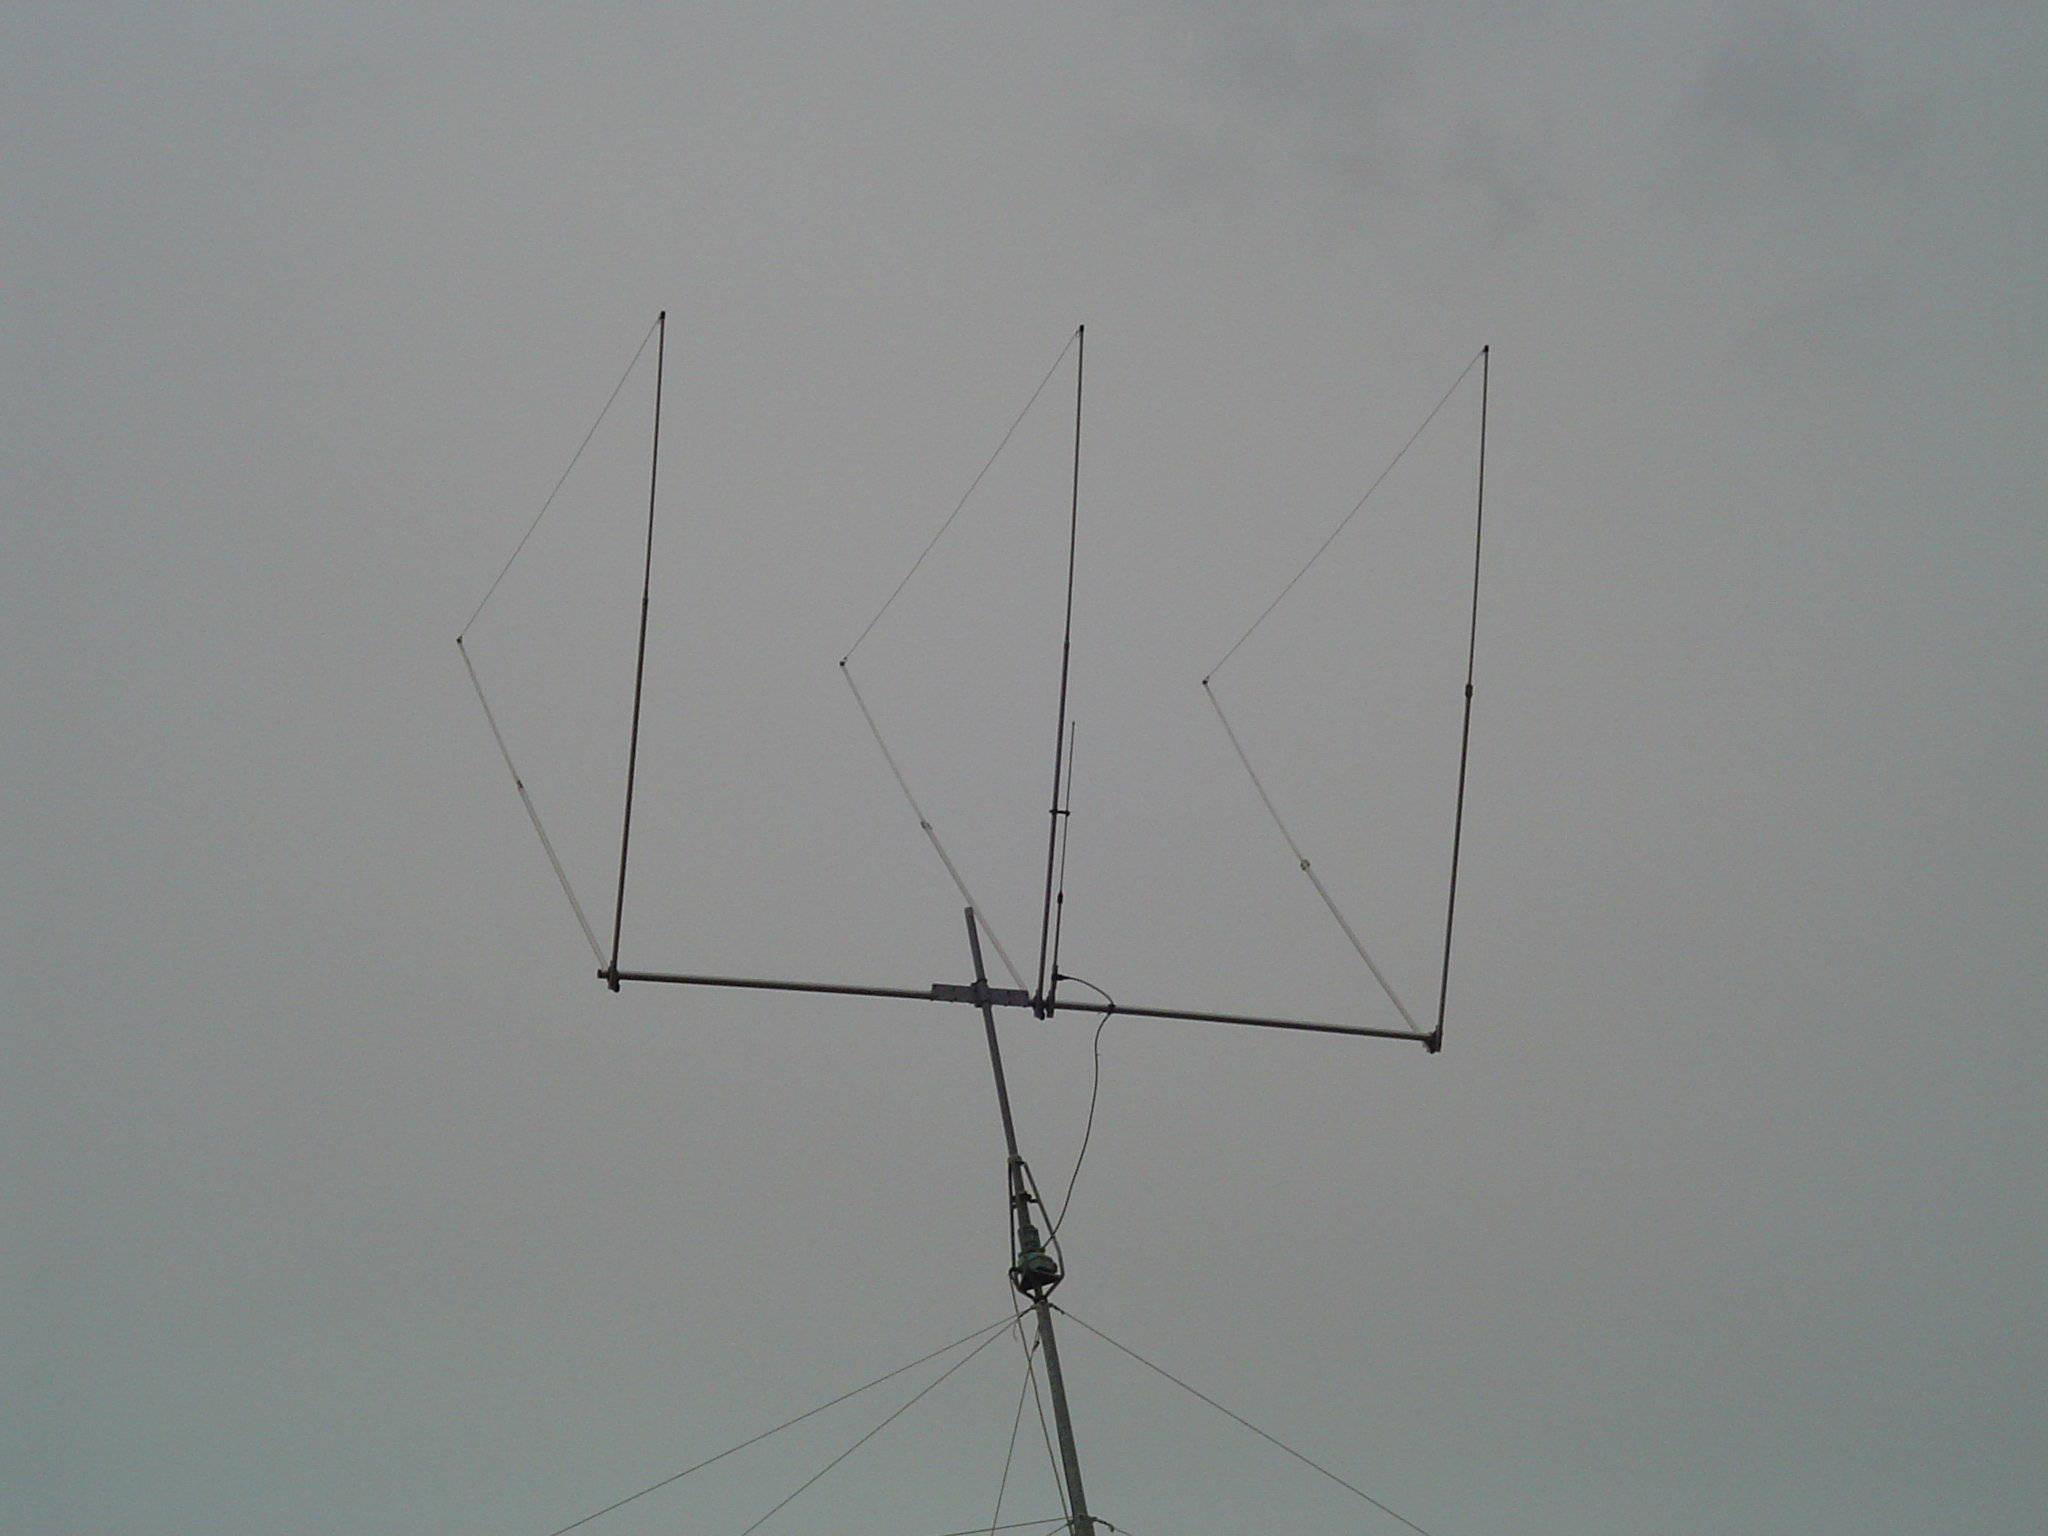 20 Meter Delta Loop Antenna http://dx-antennas.com/Height%20versus%20take%20off%20angle.htm